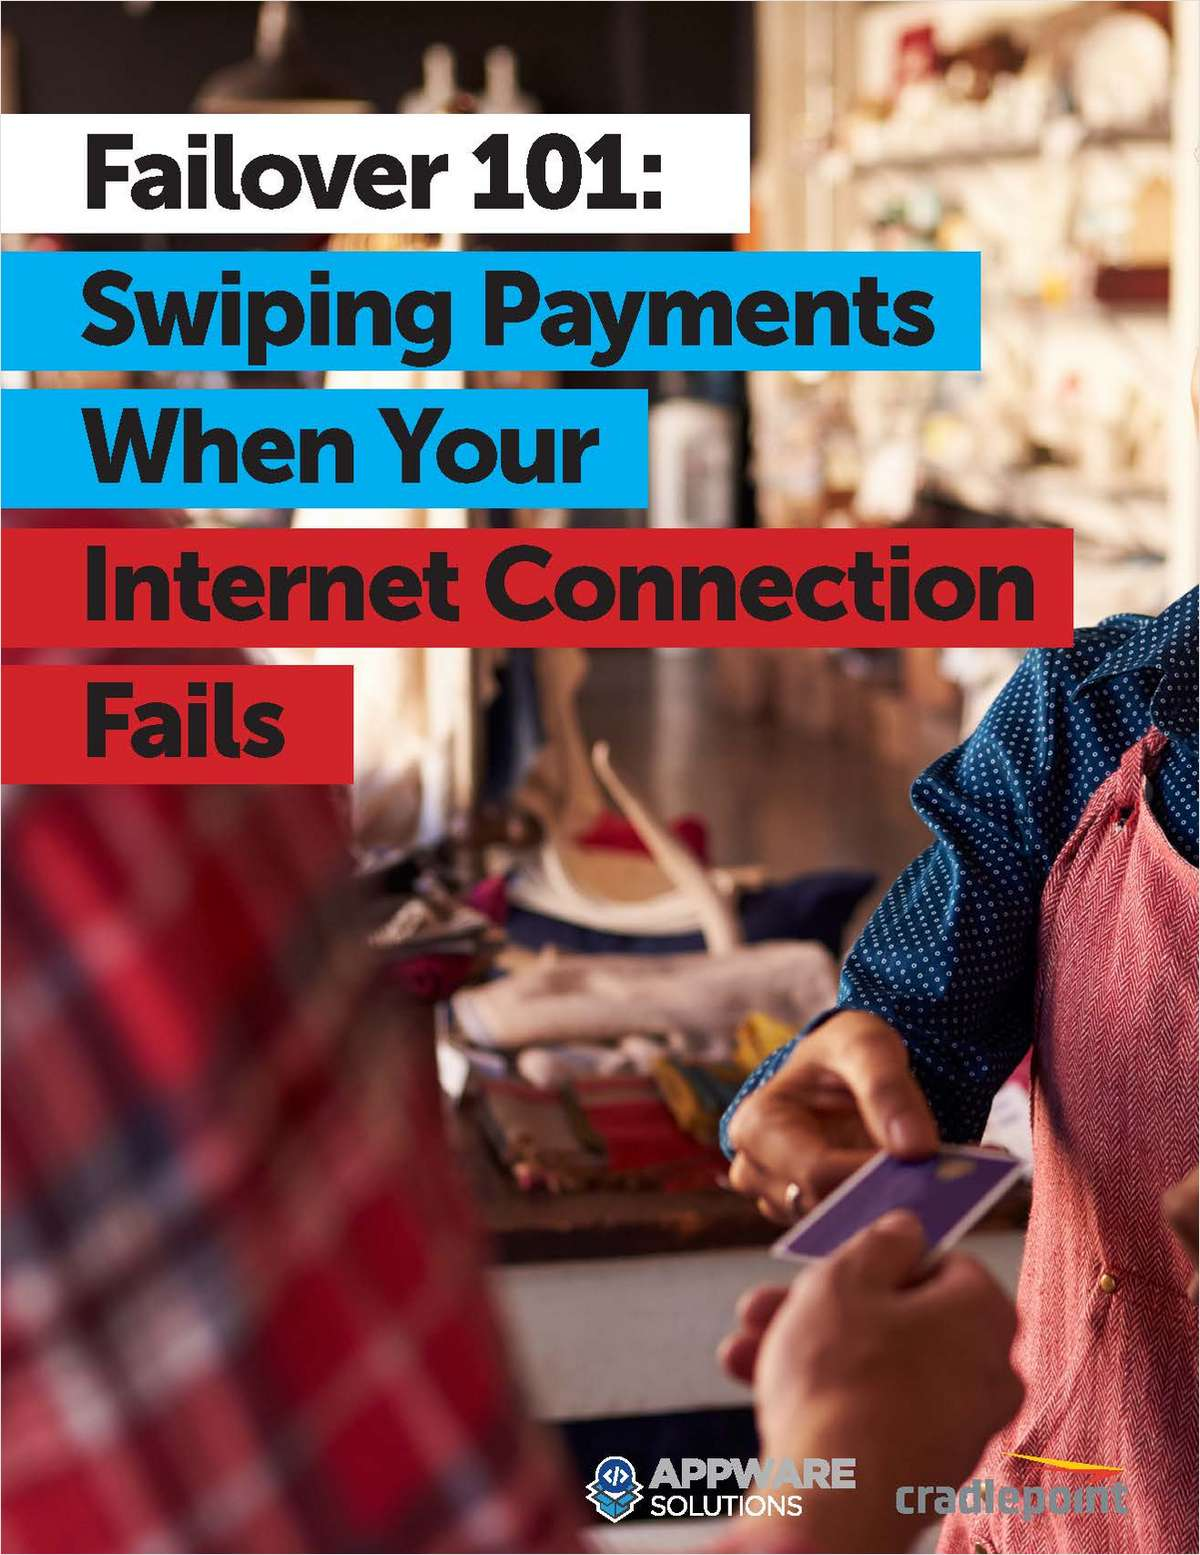 Failover 101: Swiping Payments When Your Internet Connection Fails